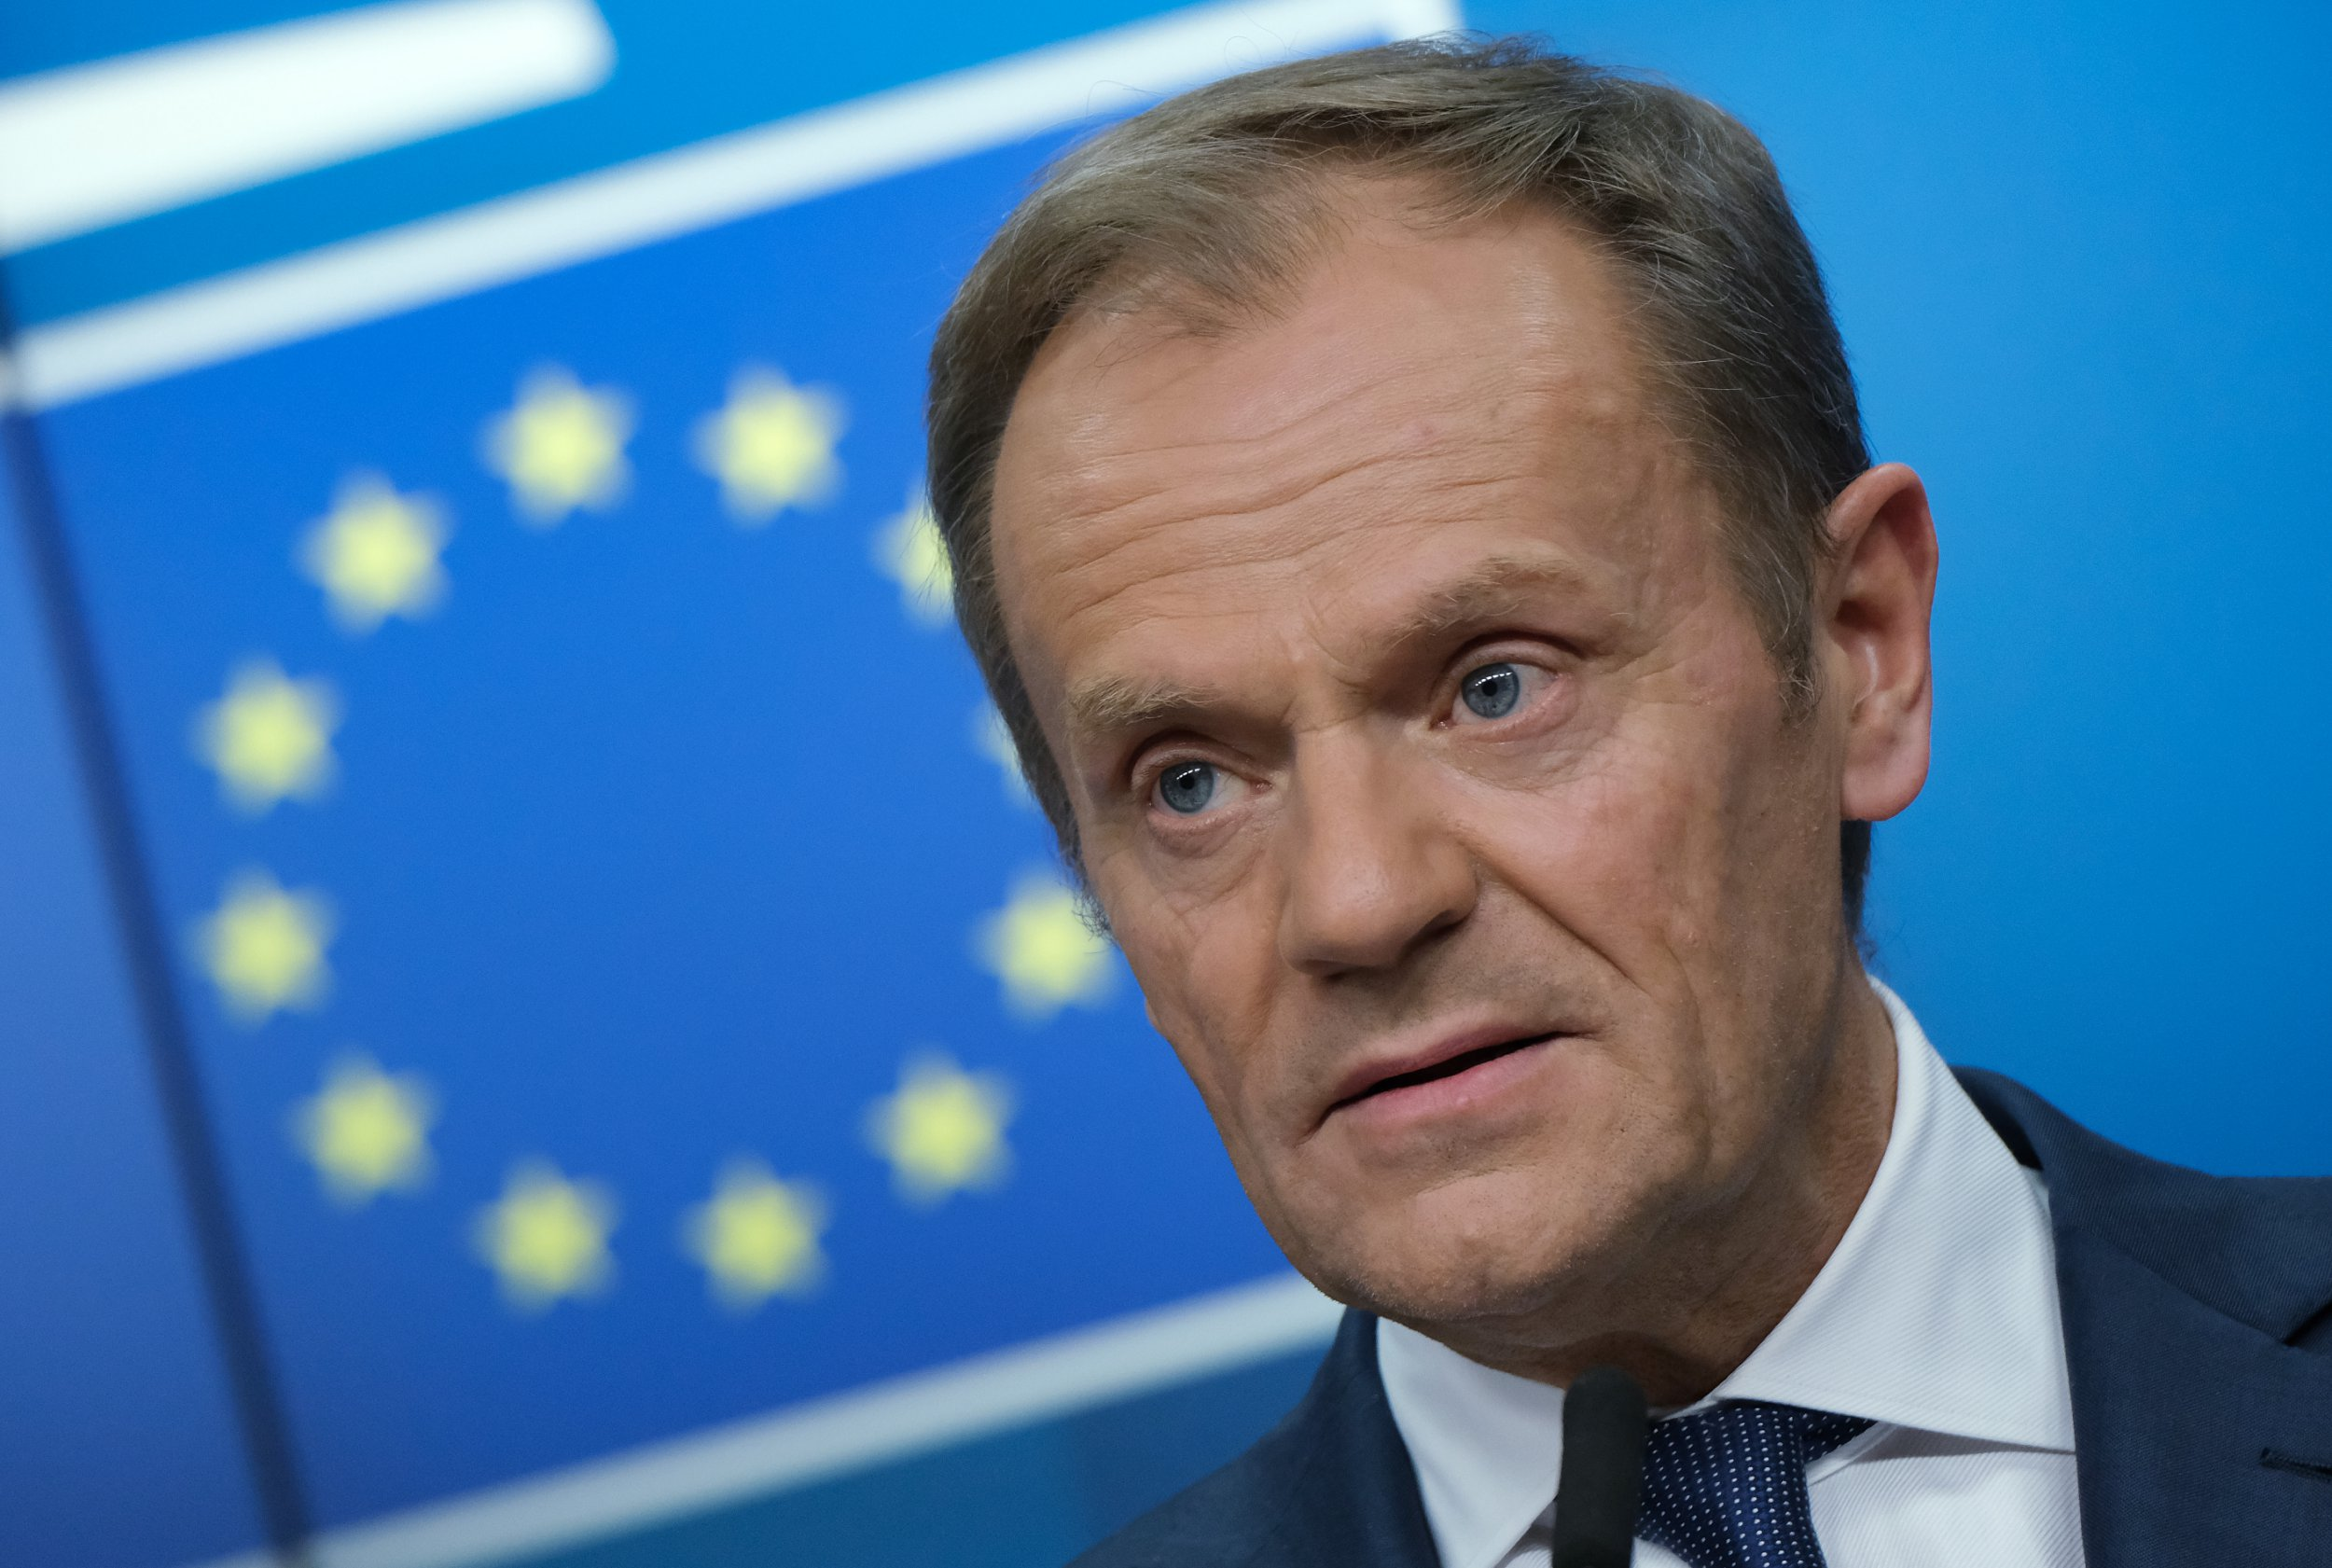 BRUSSELS, BELGIUM - MARCH 21: European Council President Donald Tusk speaks to the media at the end of the first of a two-day summit of European Union leaders on March 21, 2019 in Brussels, Belgium. Leaders discussed British Prime Minister Theresa May's request for an extension of the deadline for the United Kingdom's departure from the EU, or Brexit. (Photo by Sean Gallup/Getty Images)